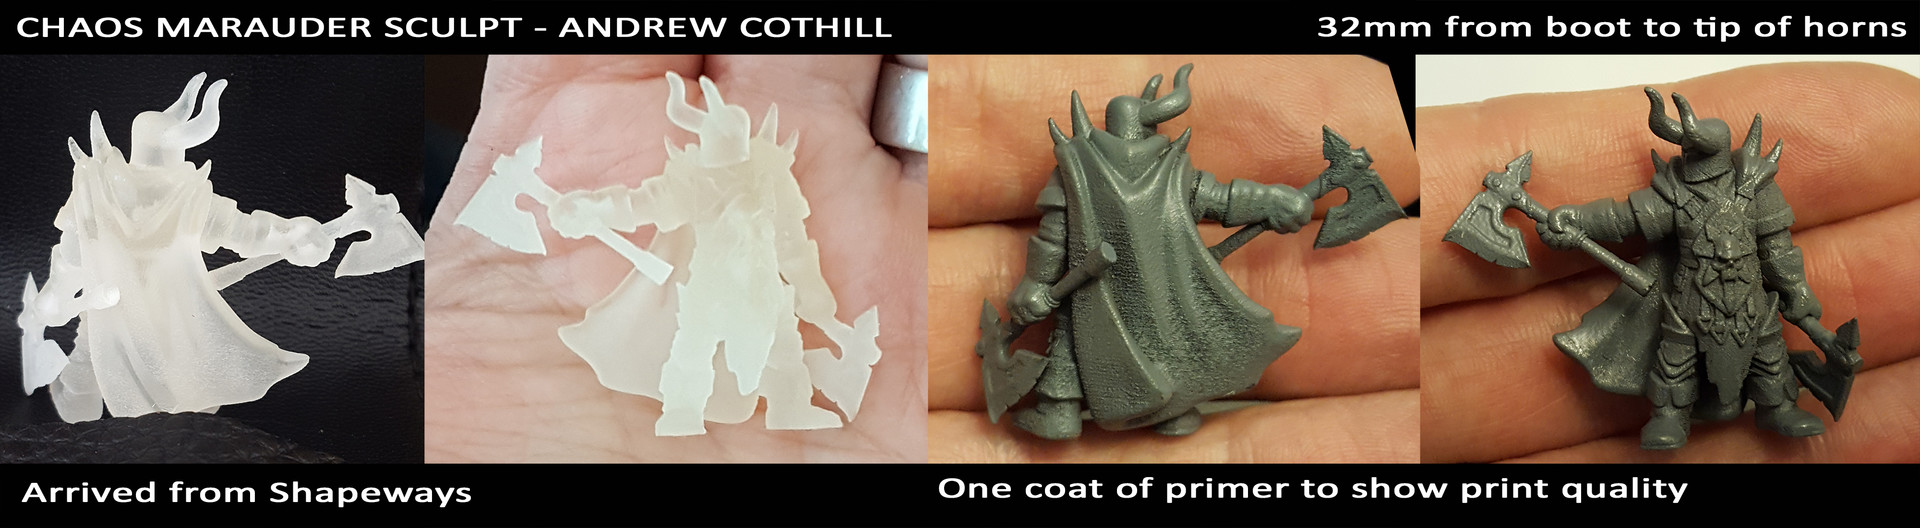 3D Print from Shapeways - Frosted Extreme Detail Material